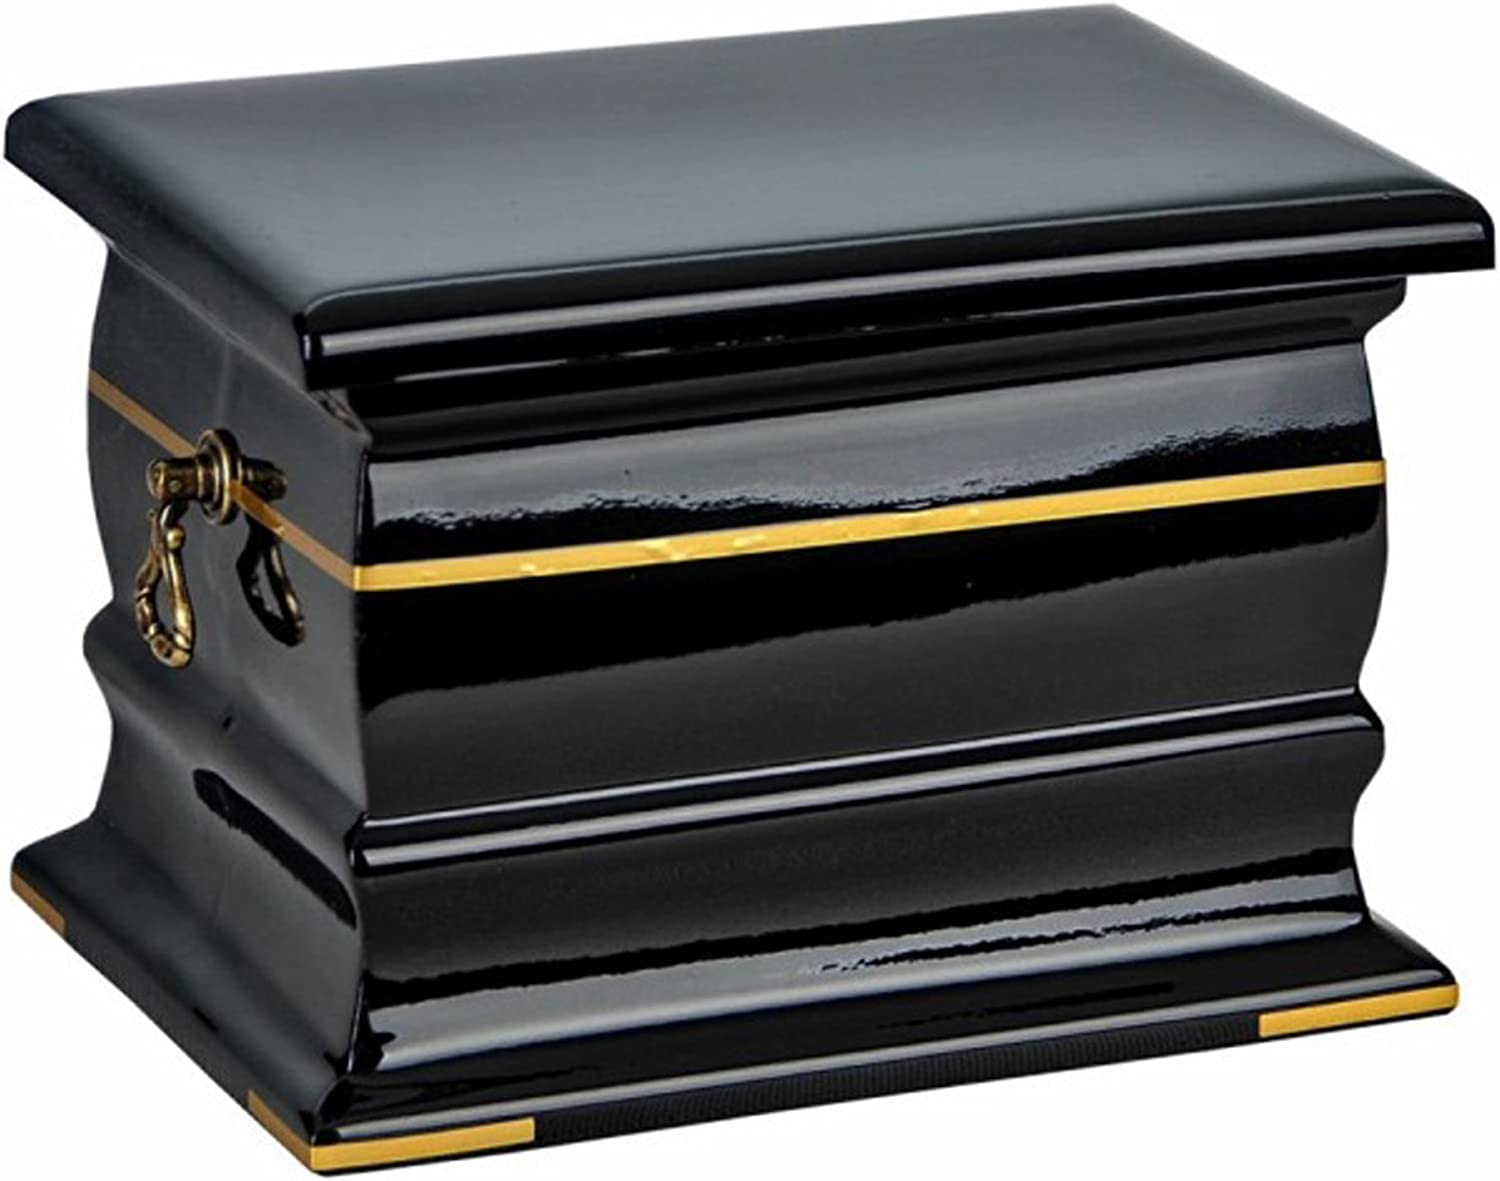 Gregspol Ltd Composite Casket Cremation Ashes Urn For Adult Decorated with Gold Band Memorial Urn for Human Ashes